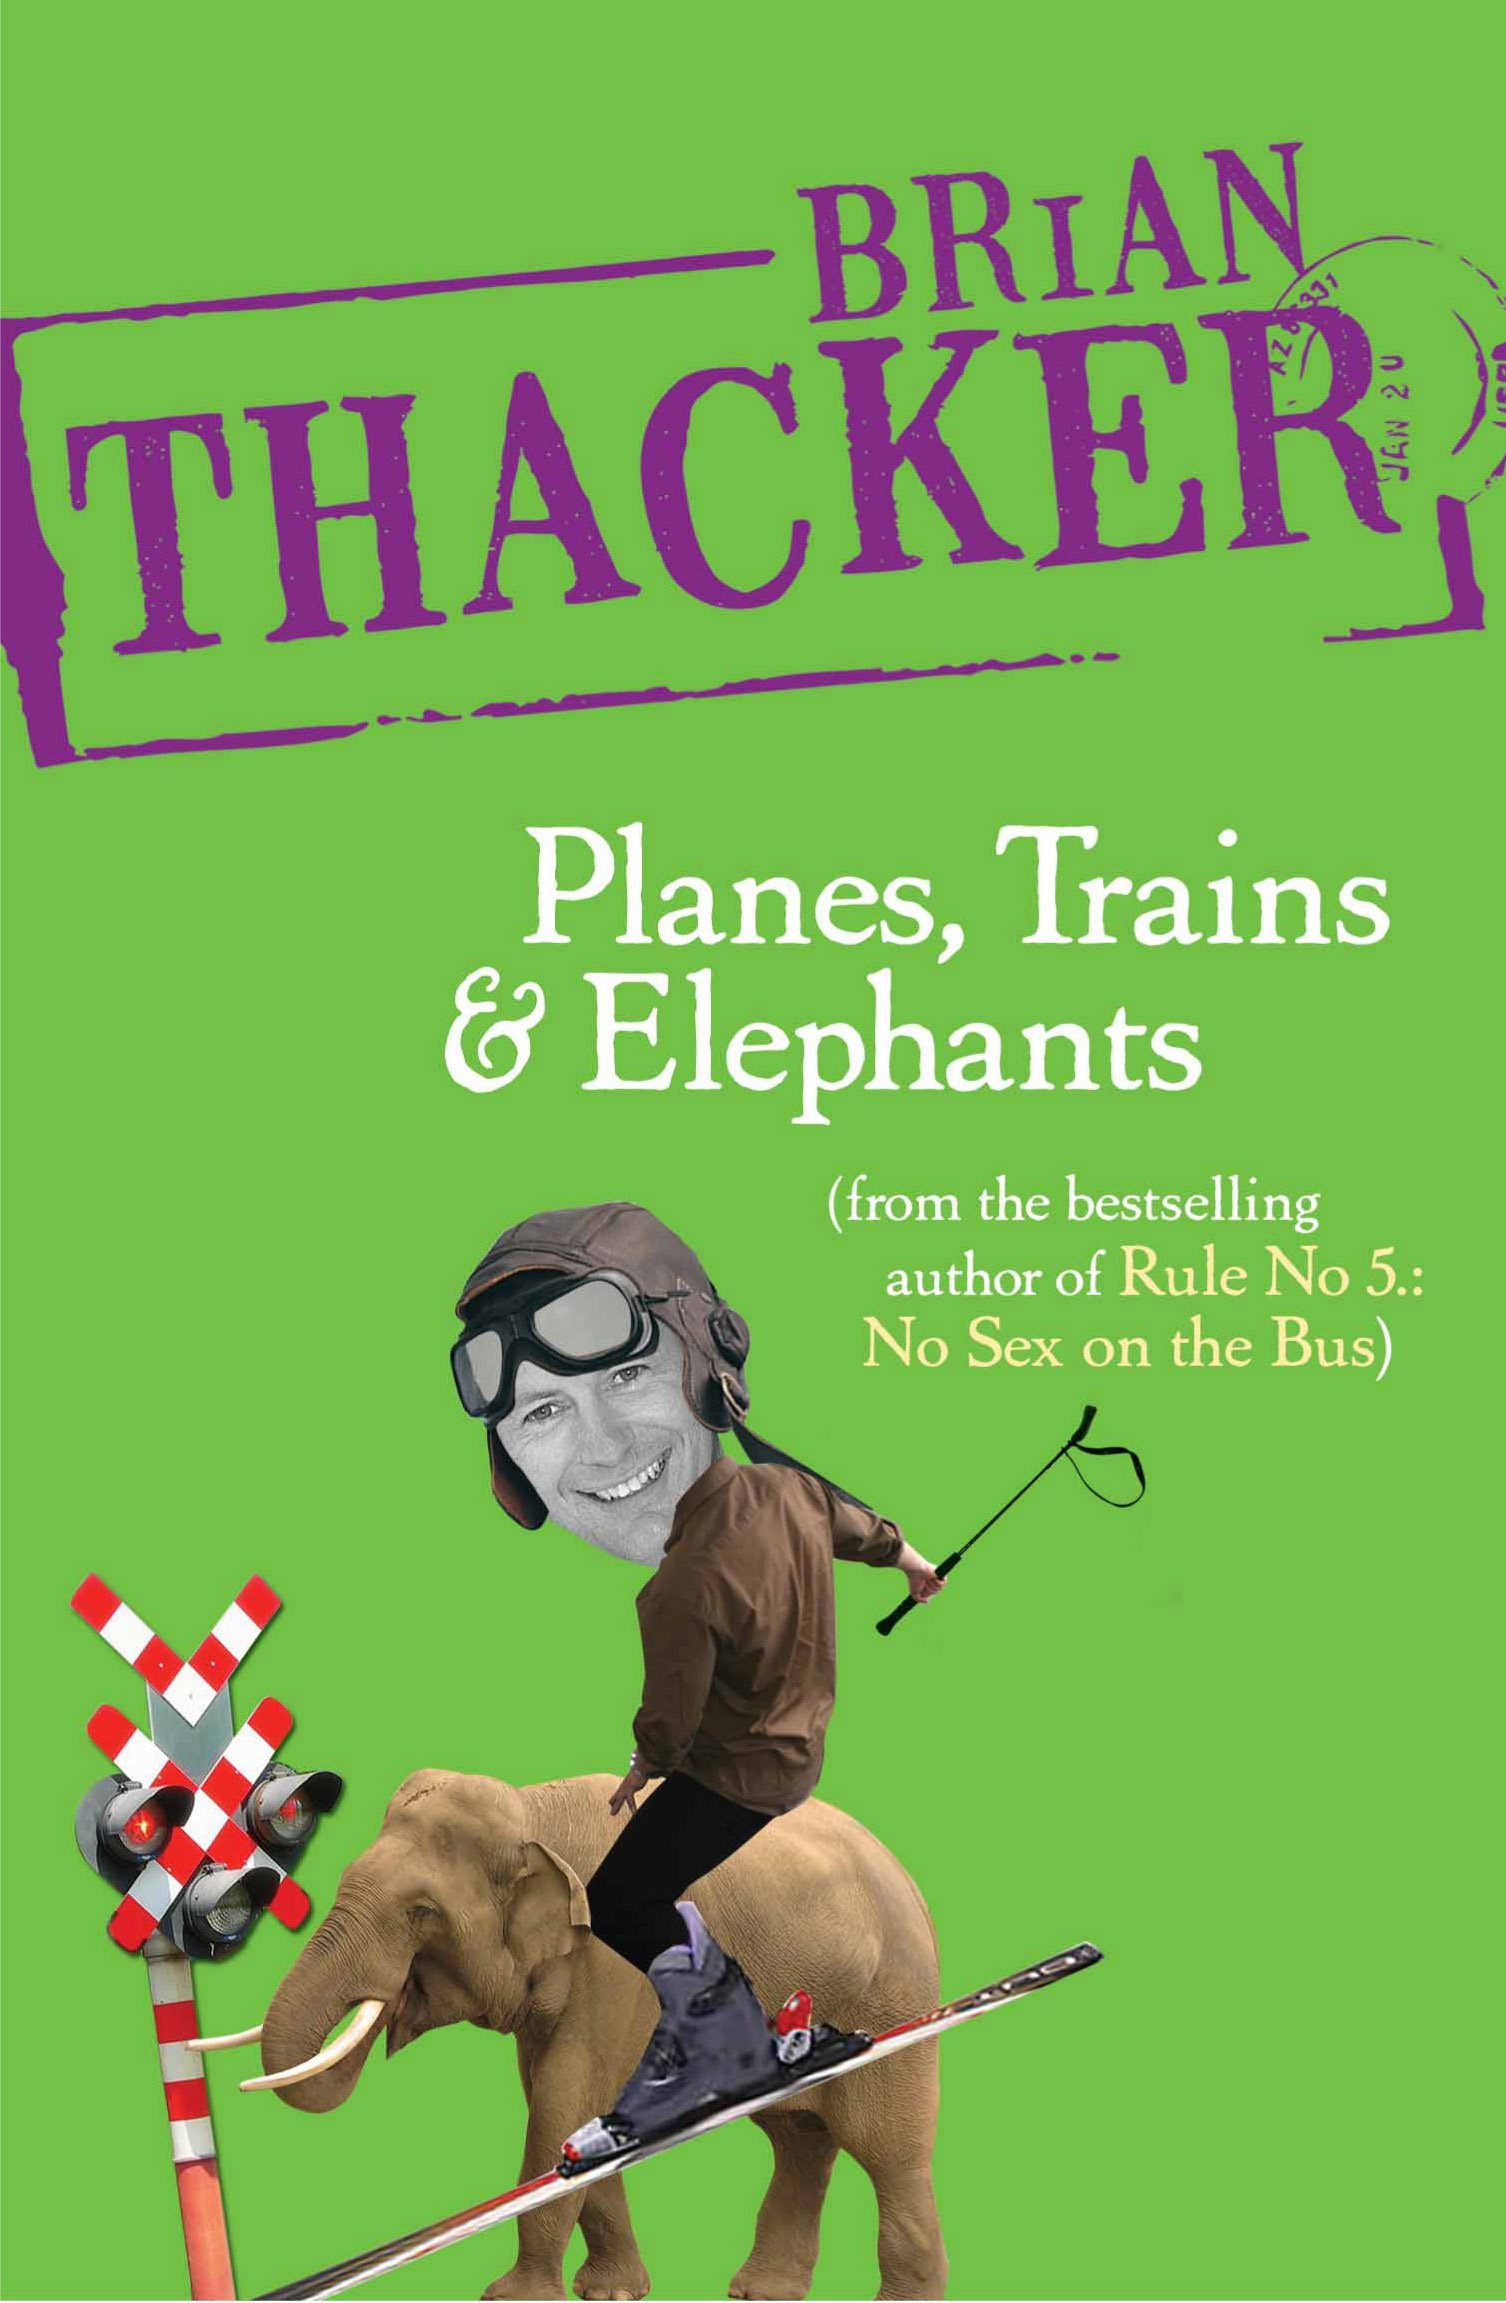 planes, trains and elephants … adventures in India